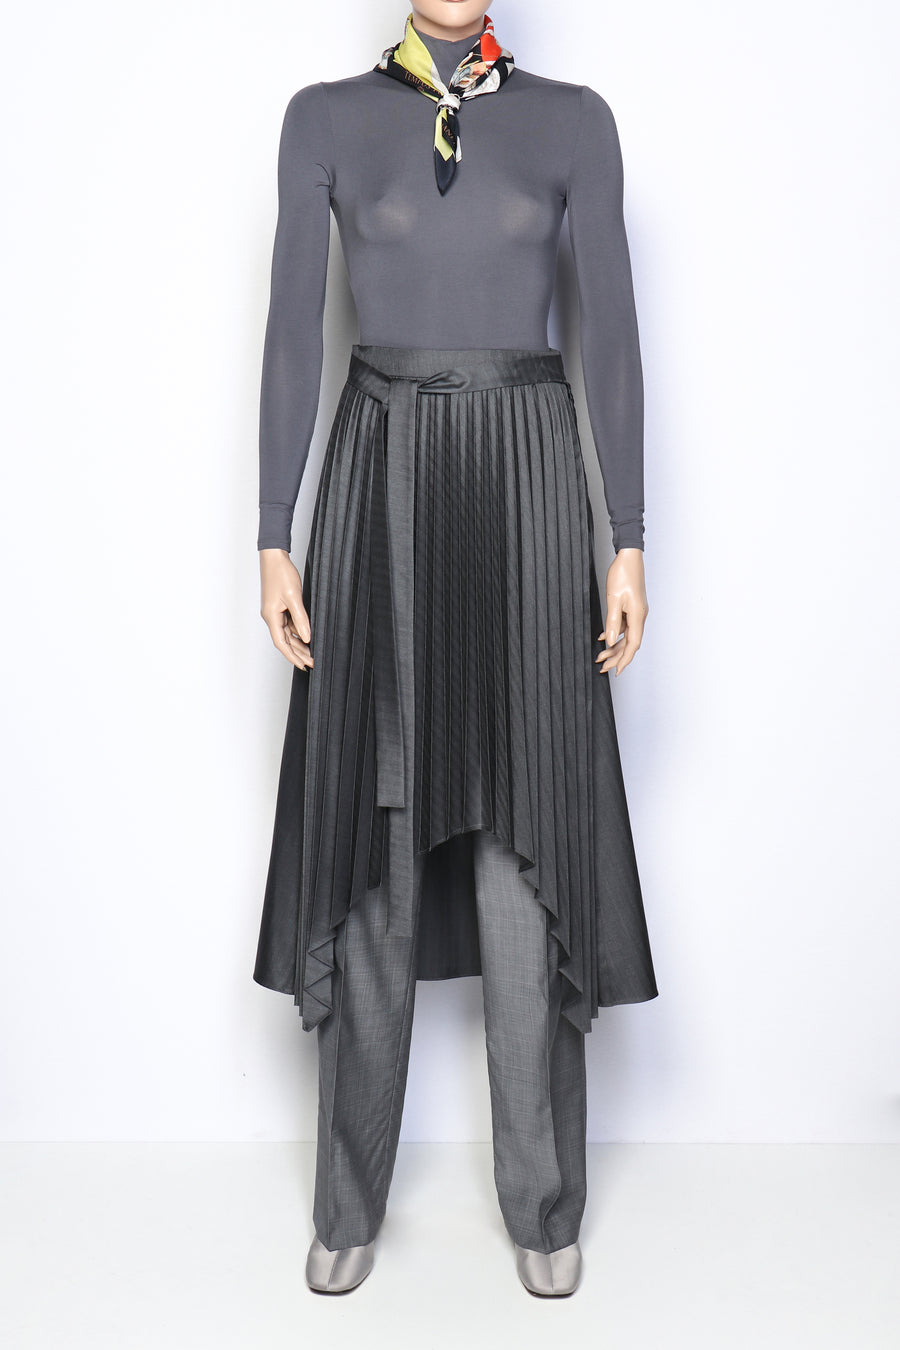 TAILORED PLEATED SKIRT GRAPHITE GRAY